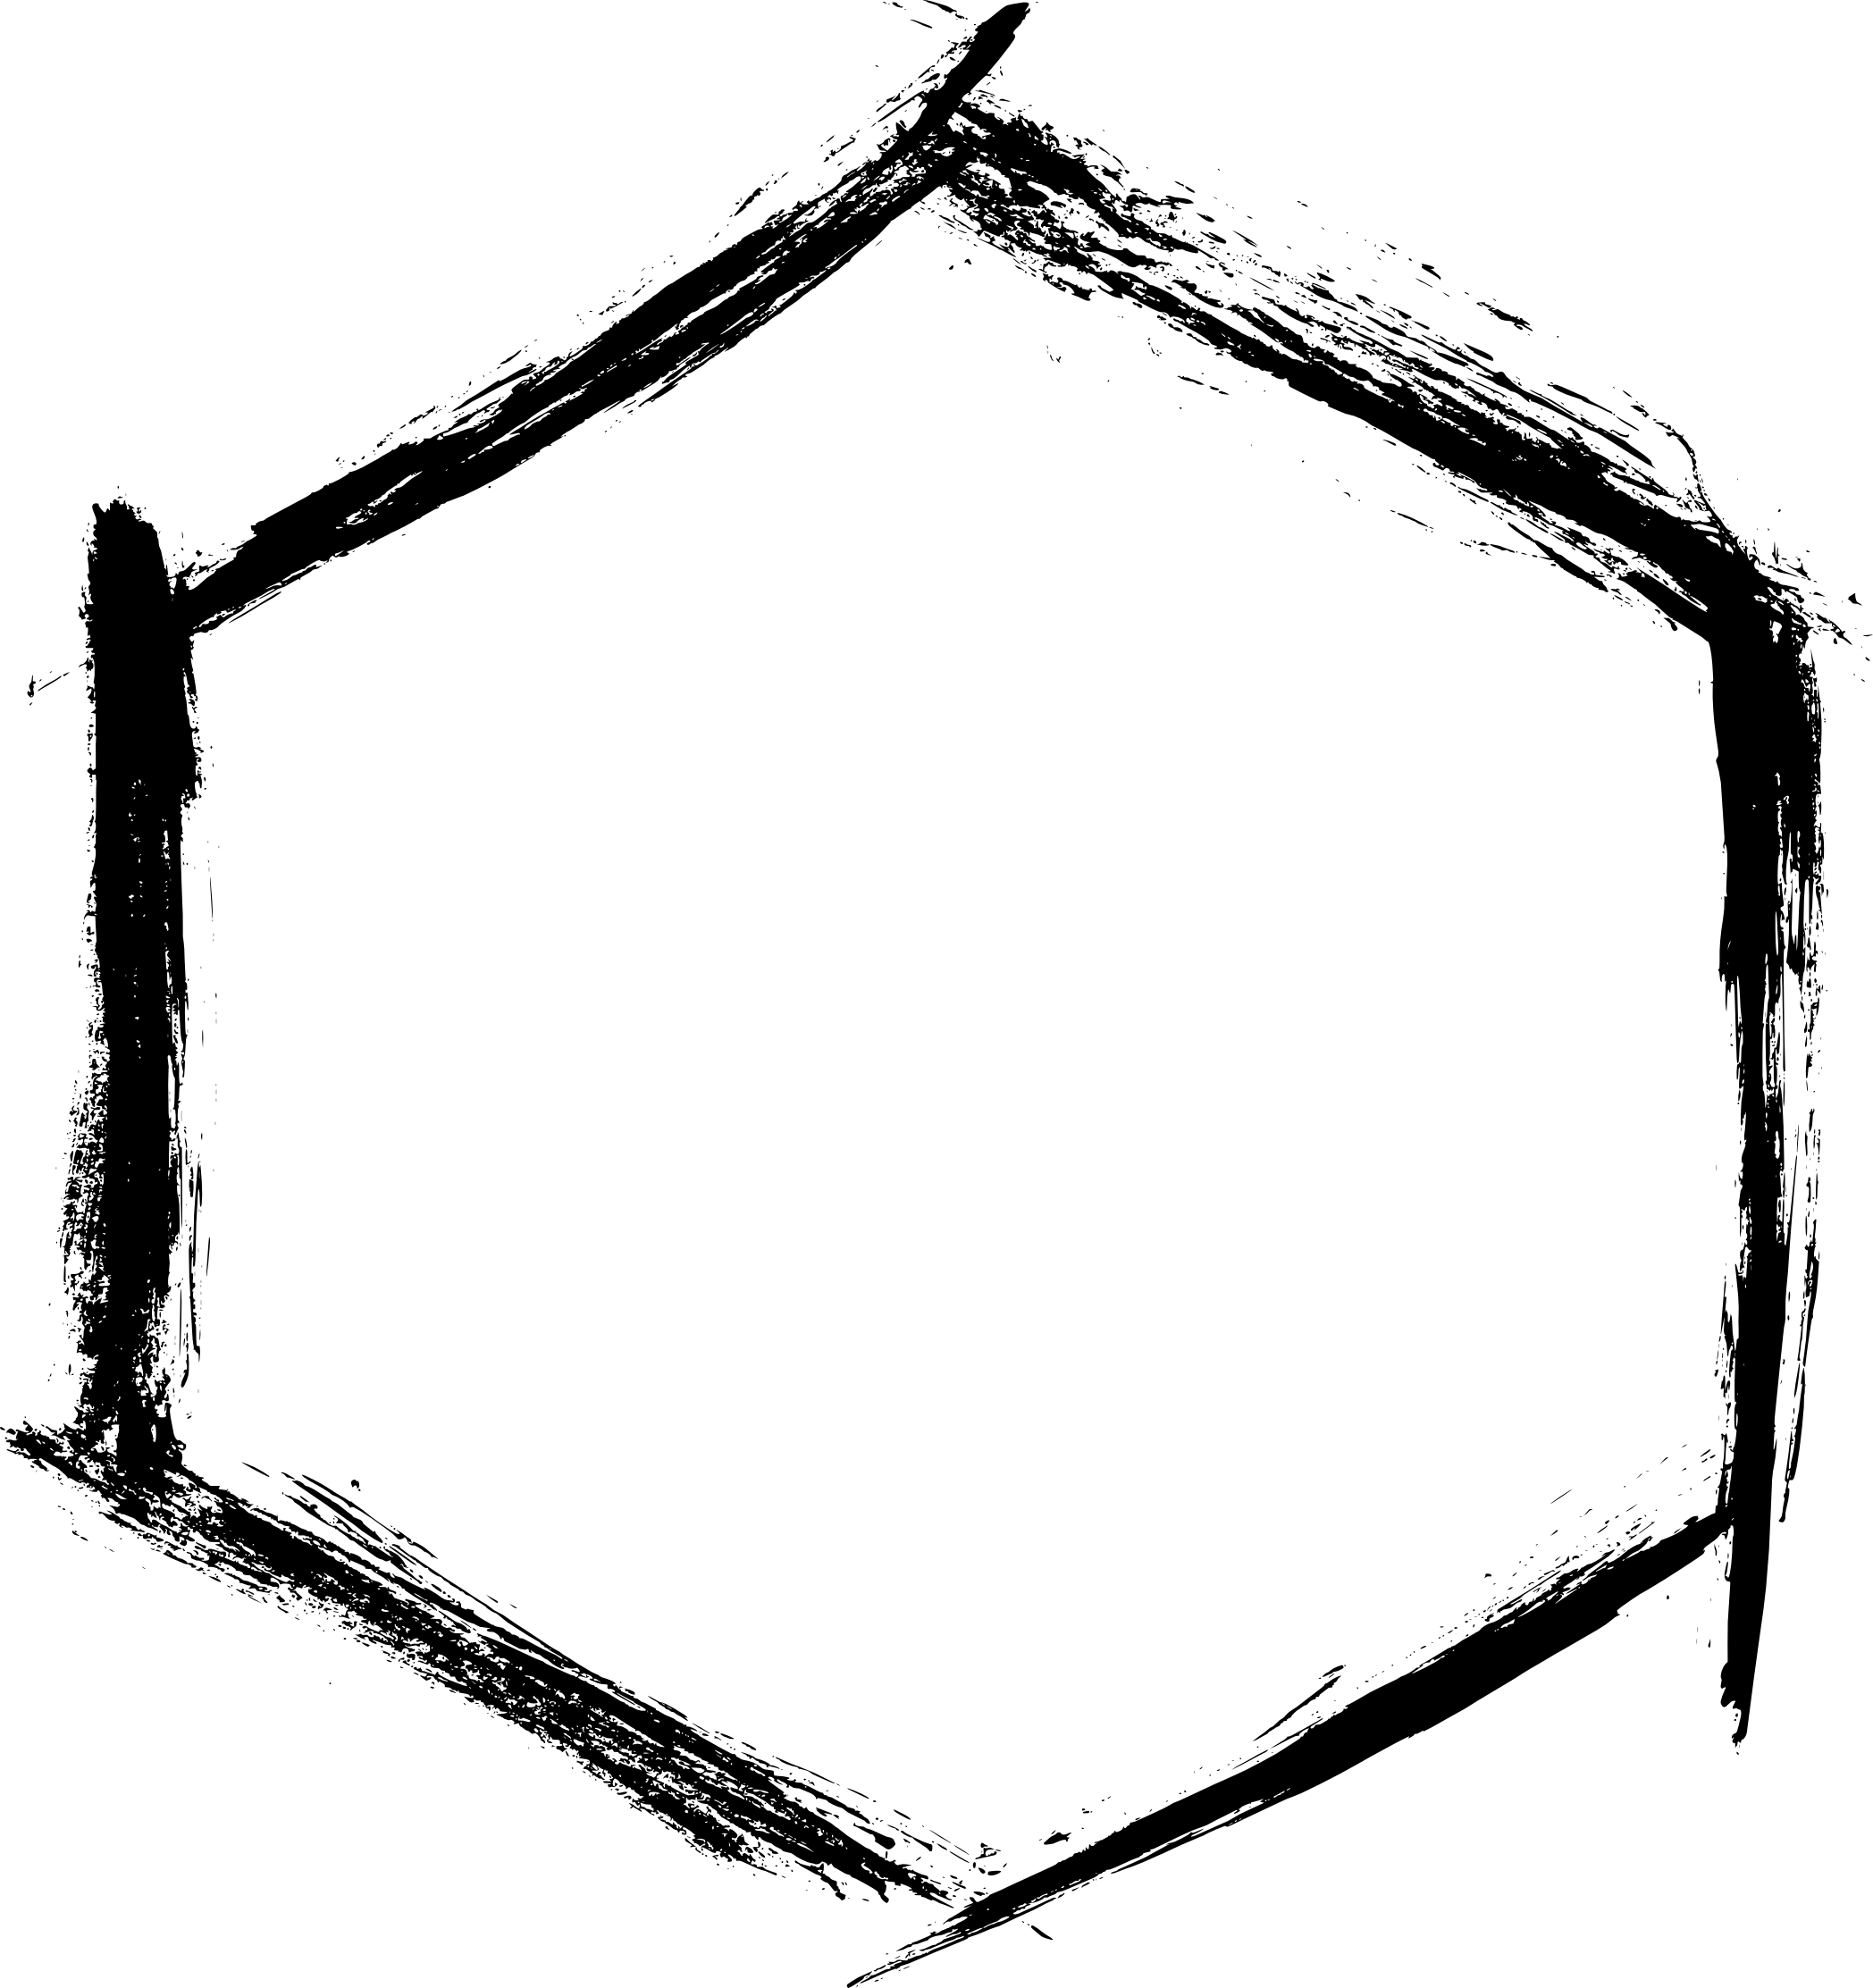 2096x2225 4 Grunge Hexagon Frame (Png Transparent)